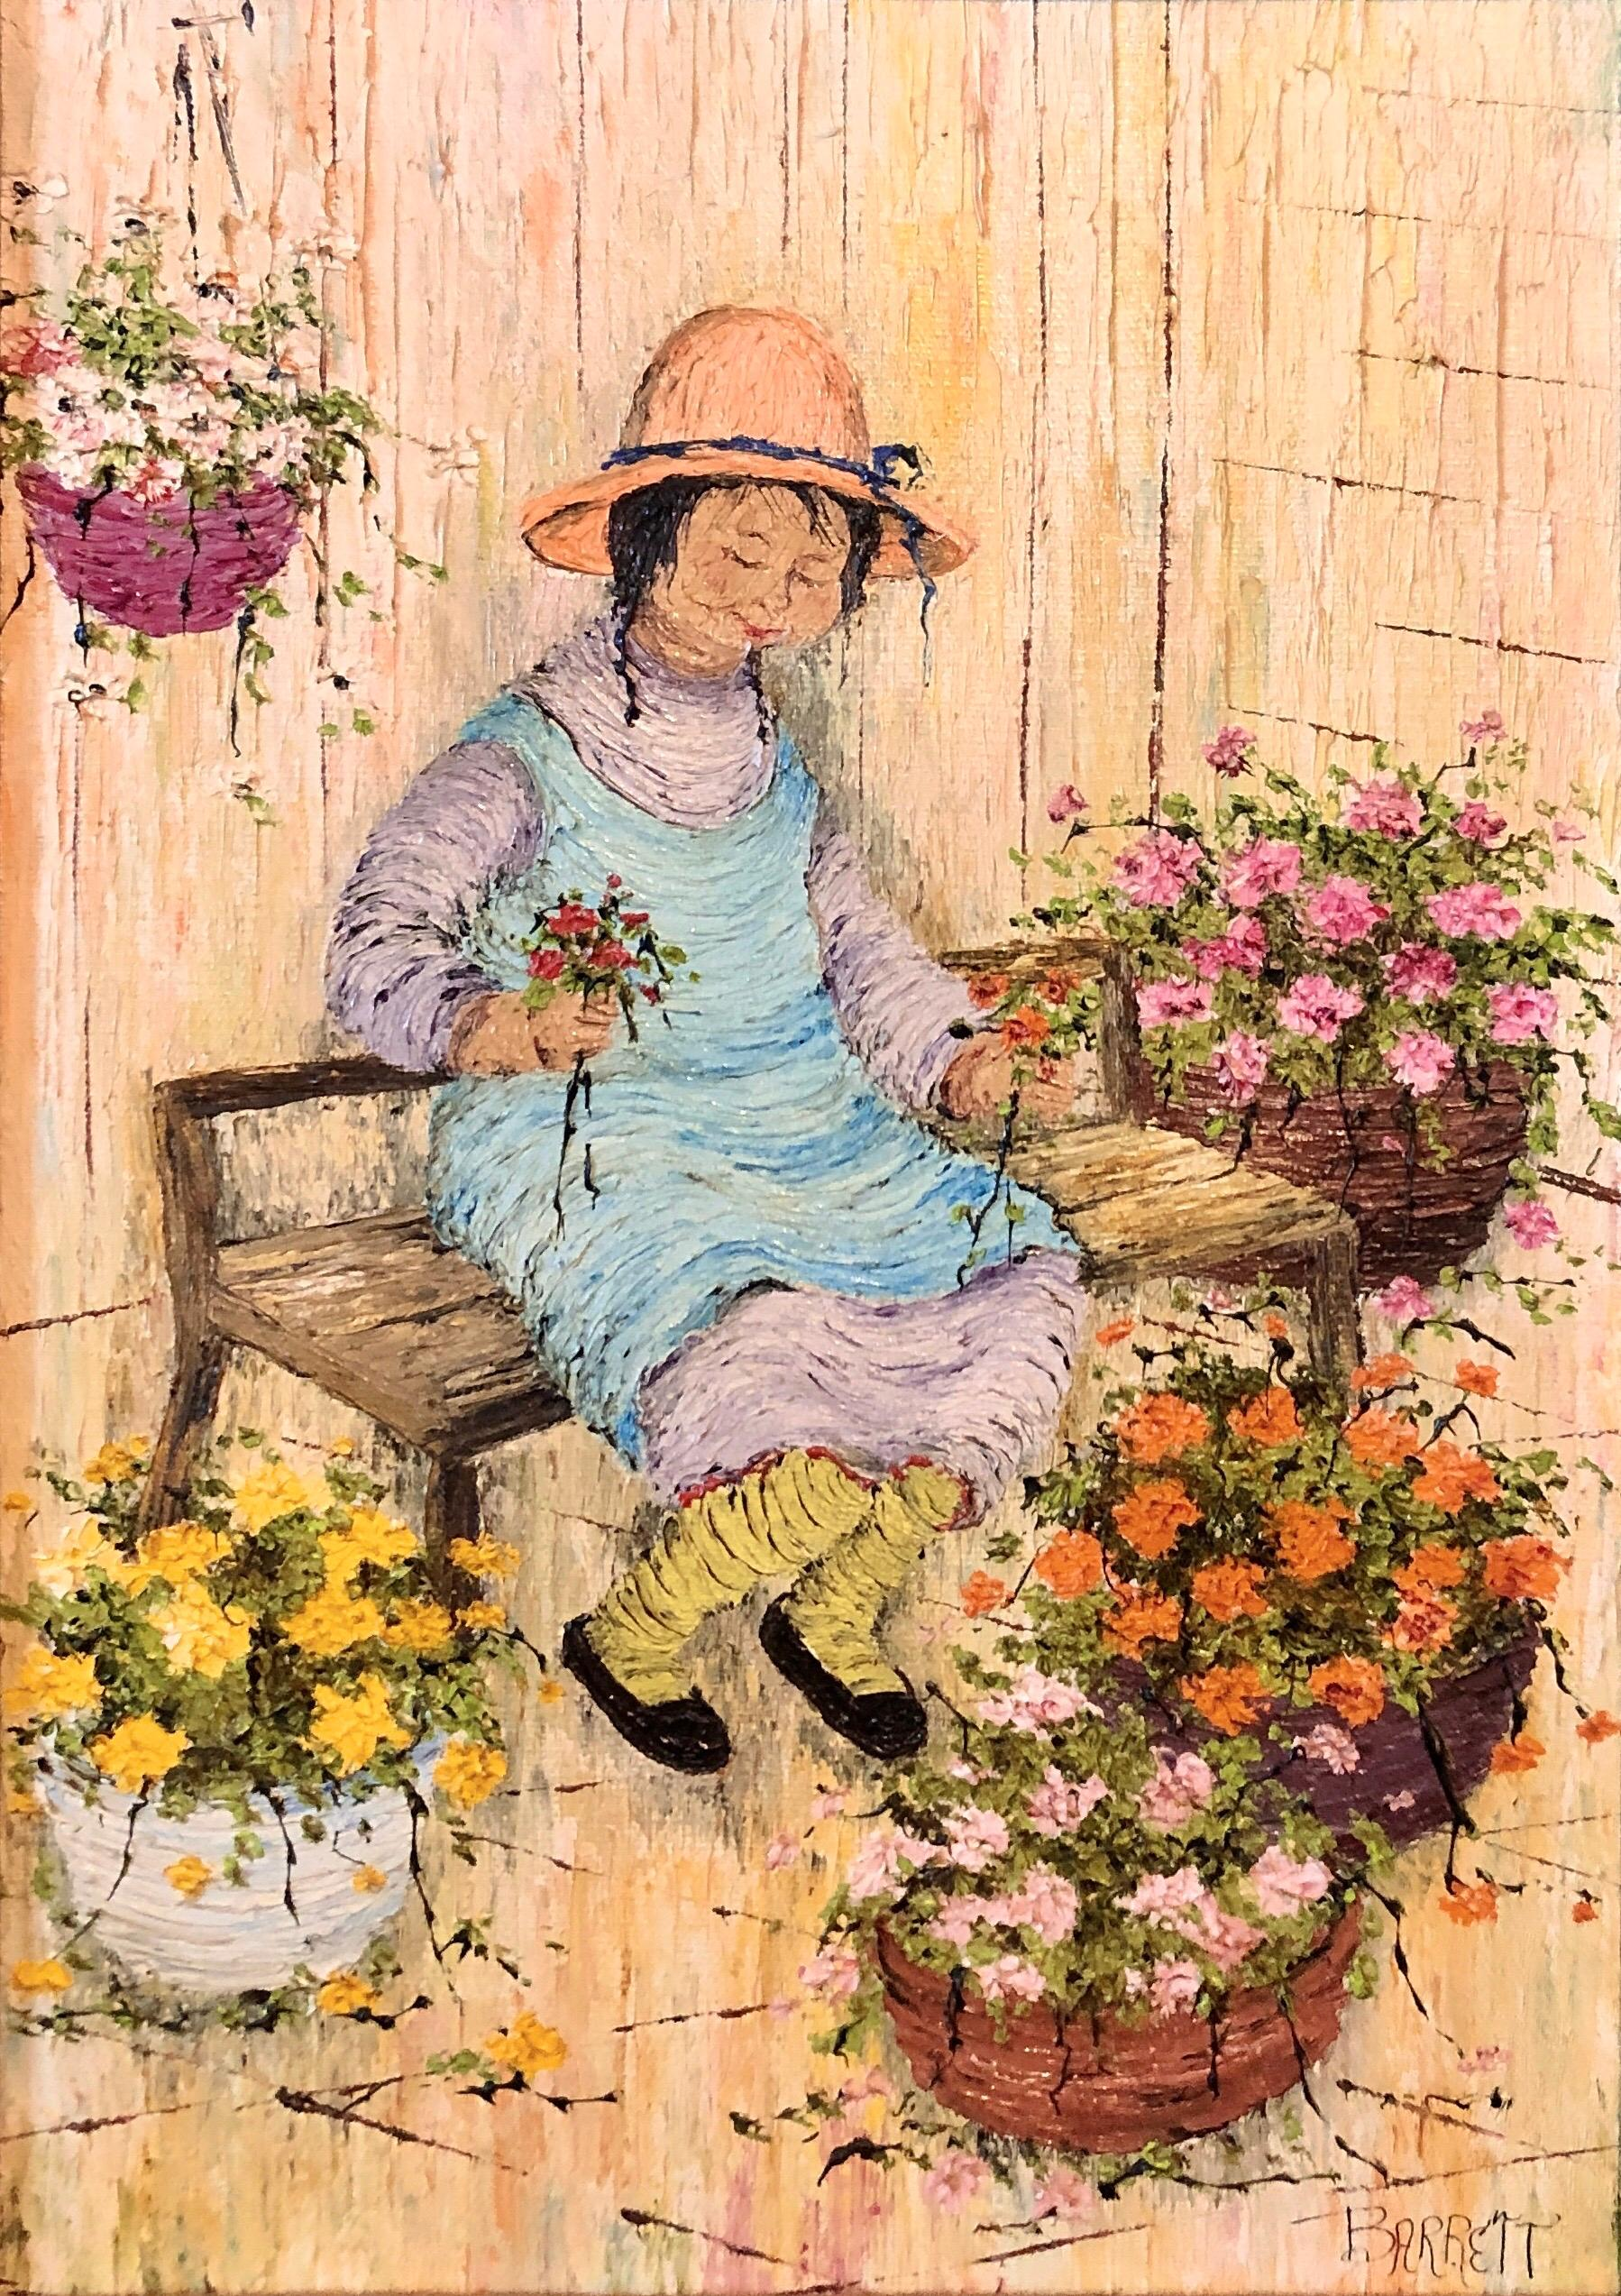 Naive Oil Painting Folk Art Florist Flower Seller with Bouquets of Flowers